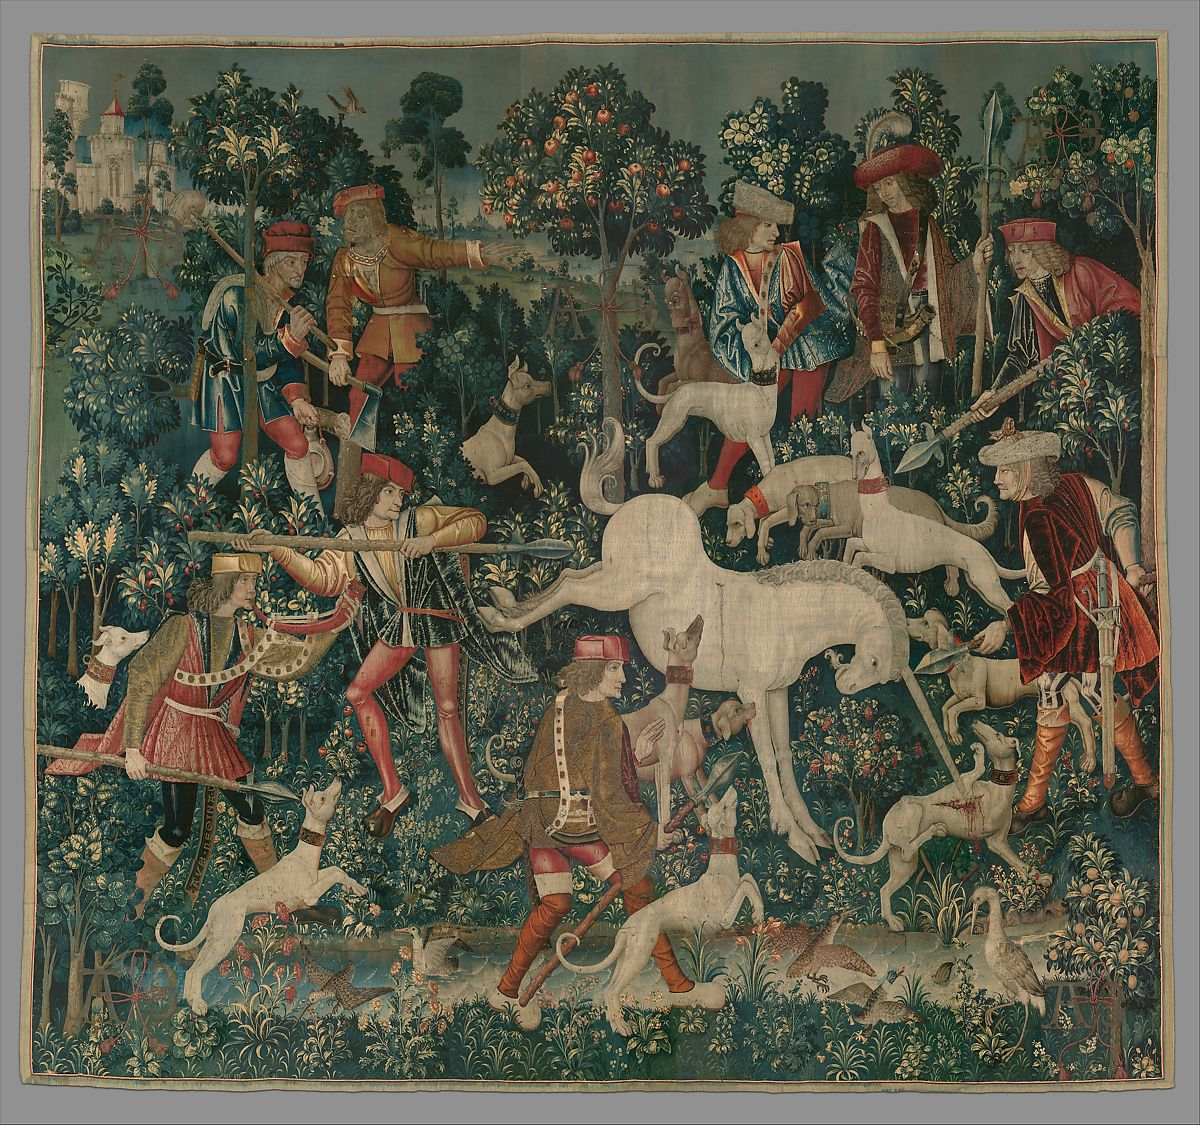 The Unicorn Defends Himself From The Unicorn Tapestries French Cartoon South Netherlandish Woven The Metropolitan Museum Of Art